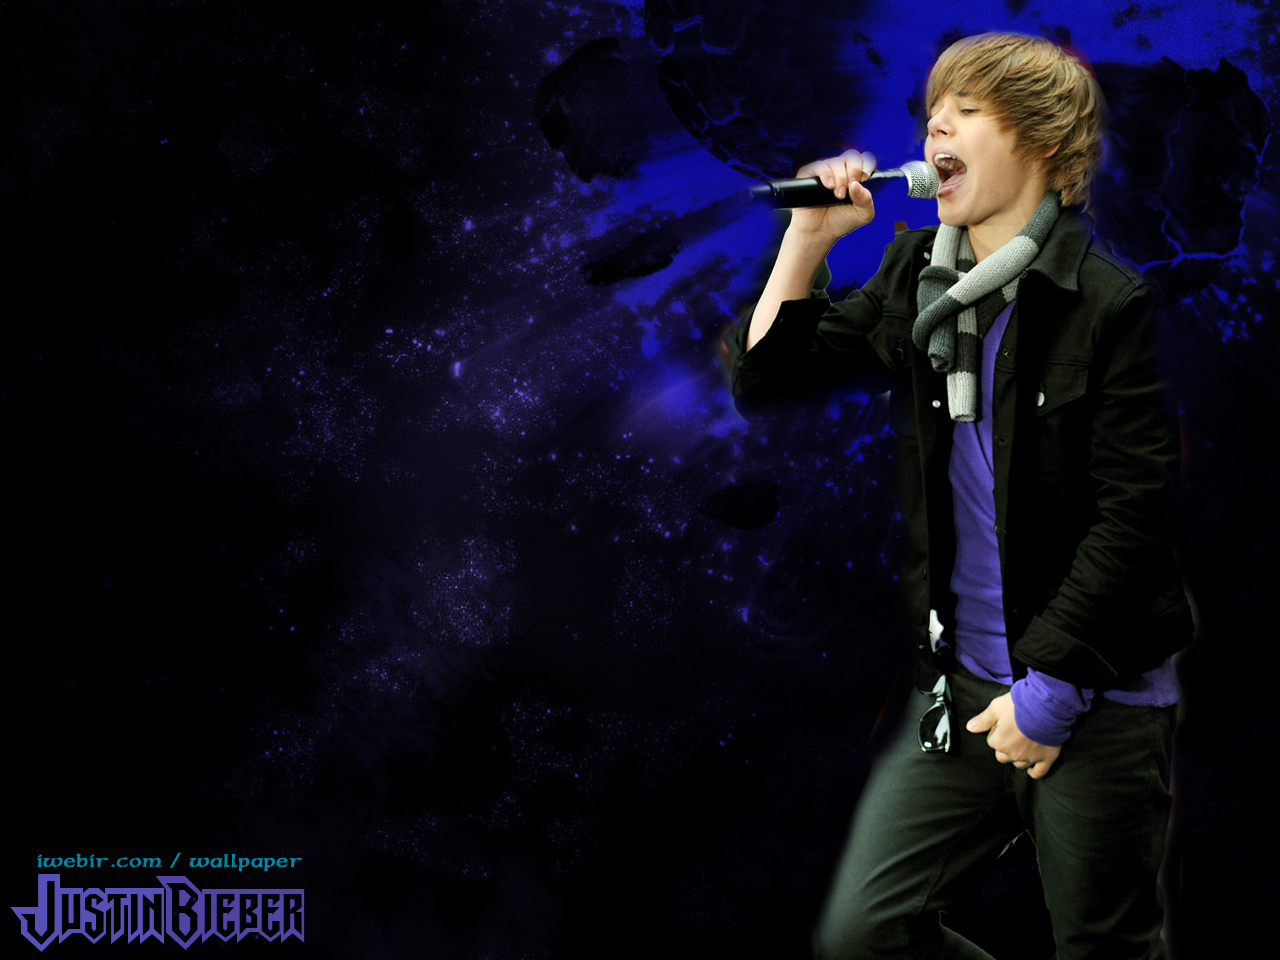 Justin Bieber images justin bieber 2010 hot wallpapers HD wallpaper and background photos